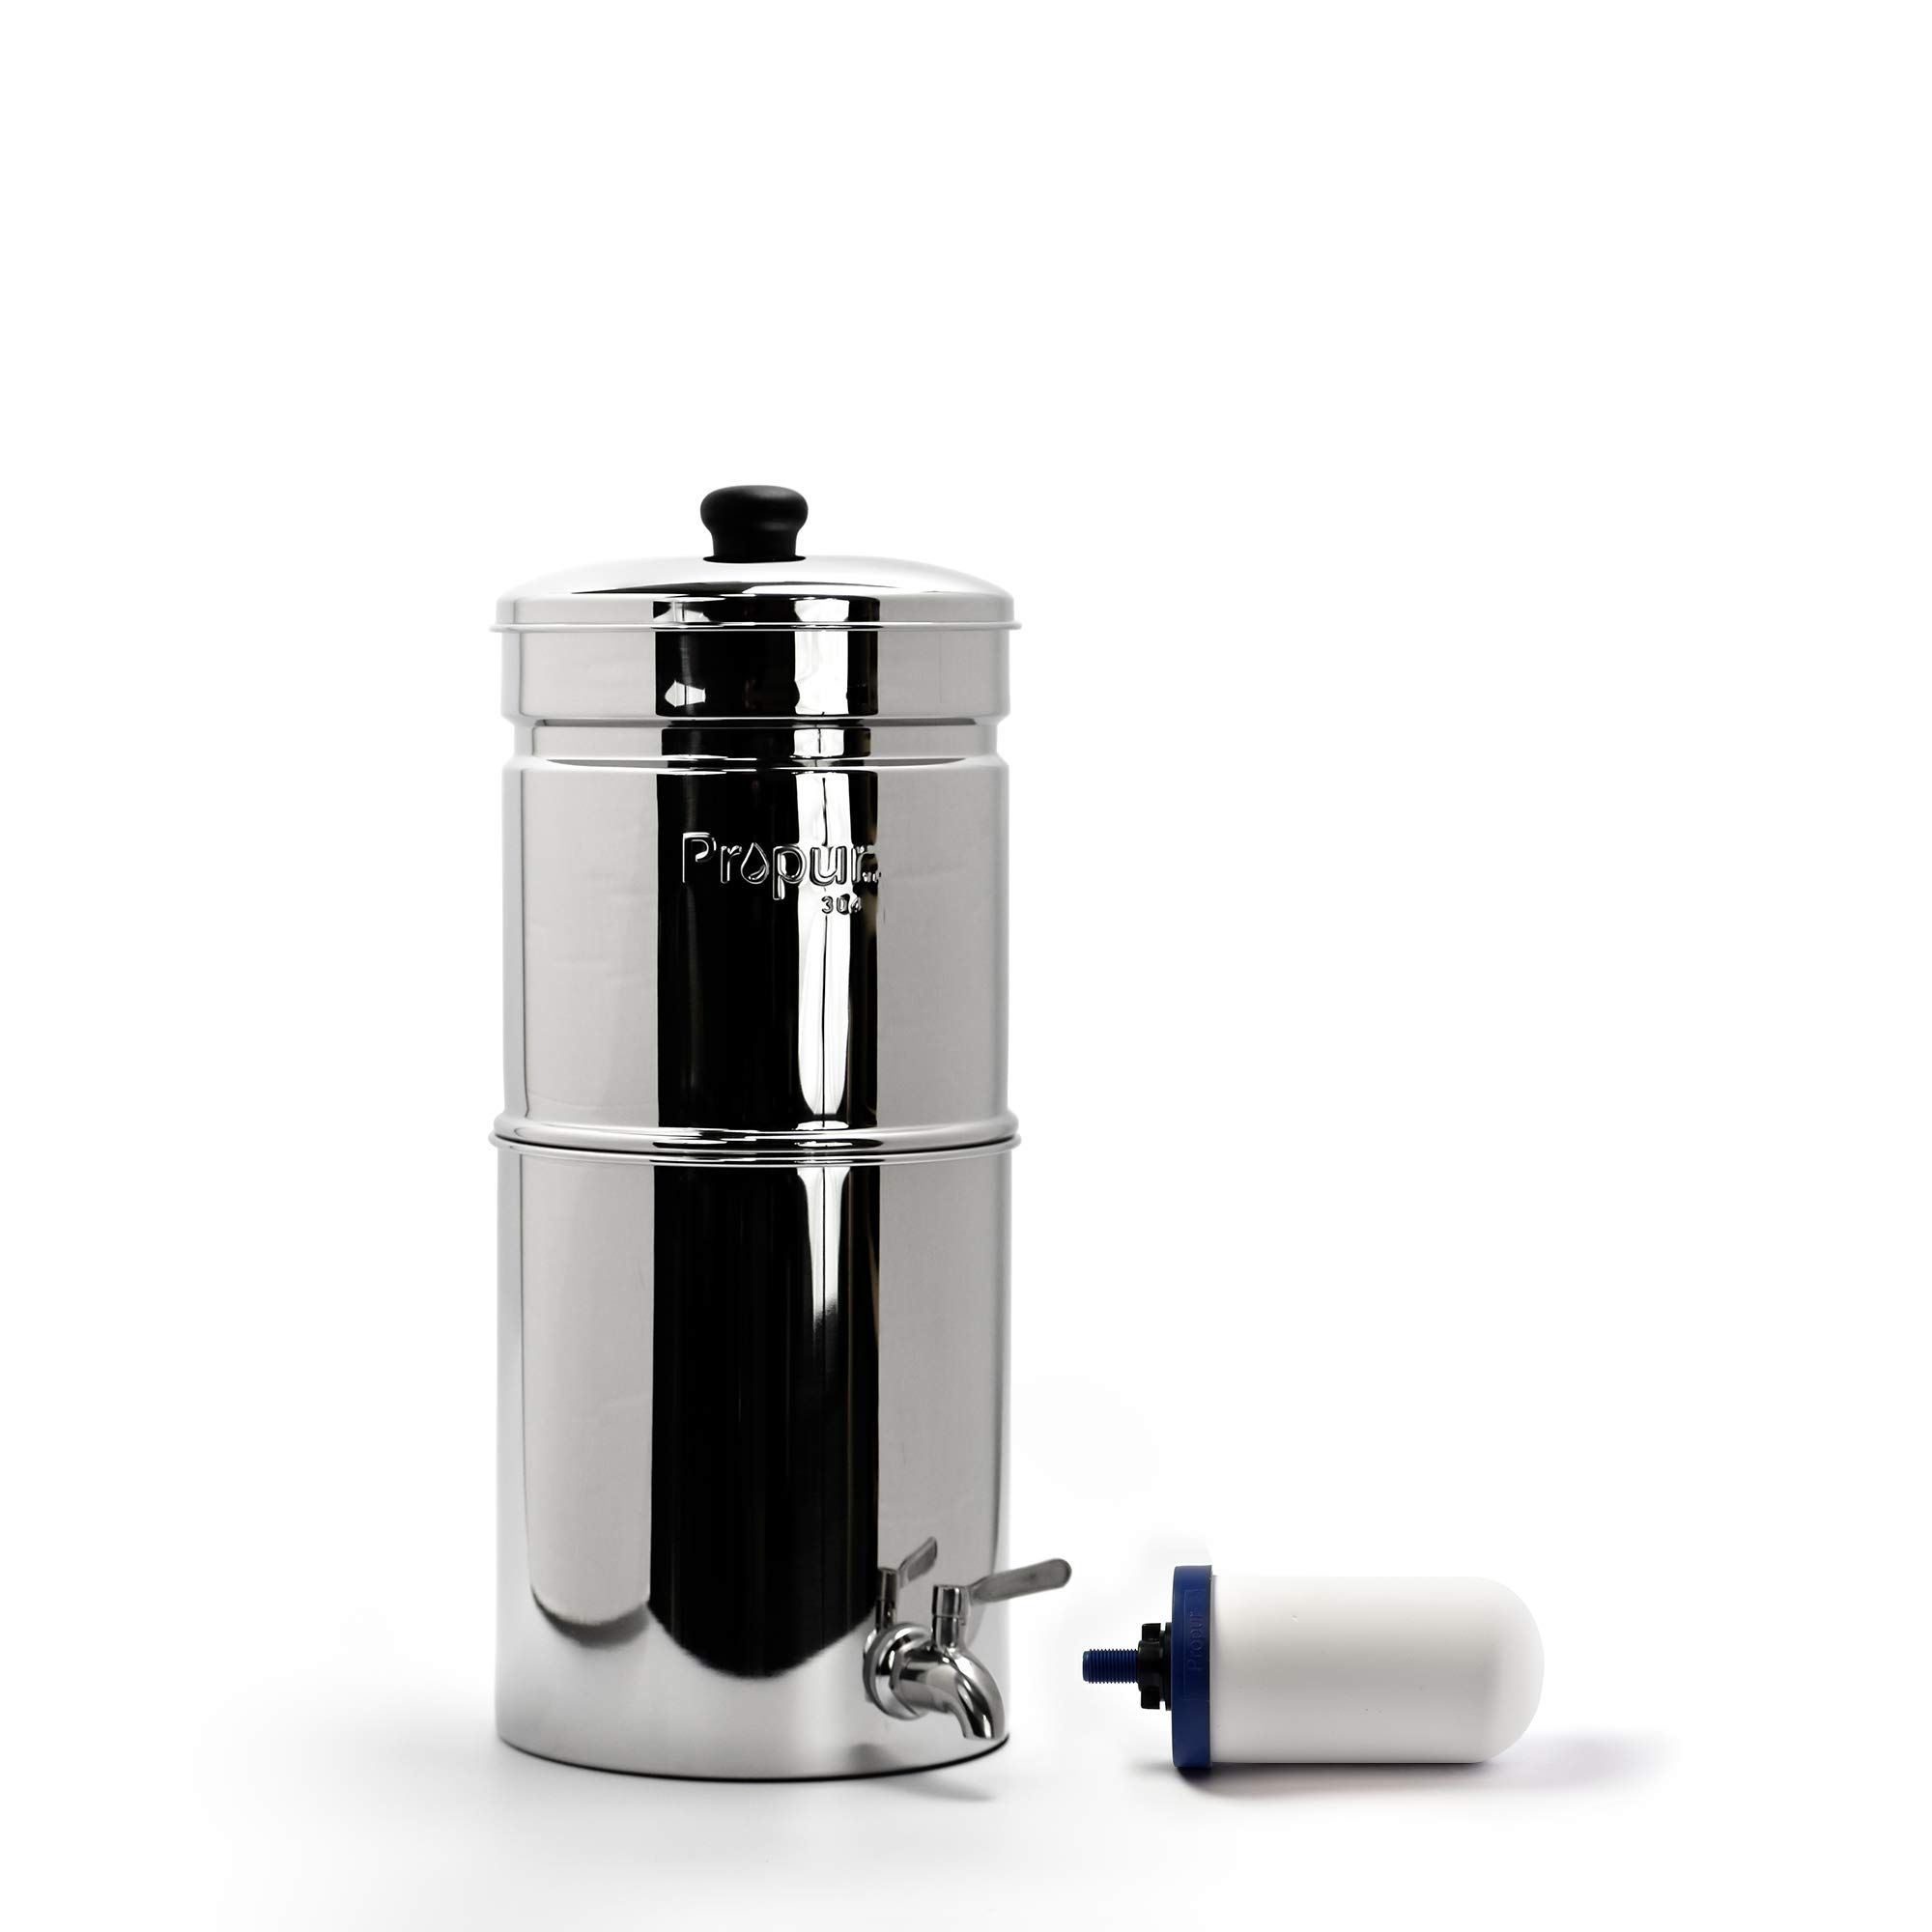 Propur Traveler Countertop Gravity Water Filter System Removes Fluoride Lead Chlorine Microplastics And More Water Filter Water Filters System Led Ring